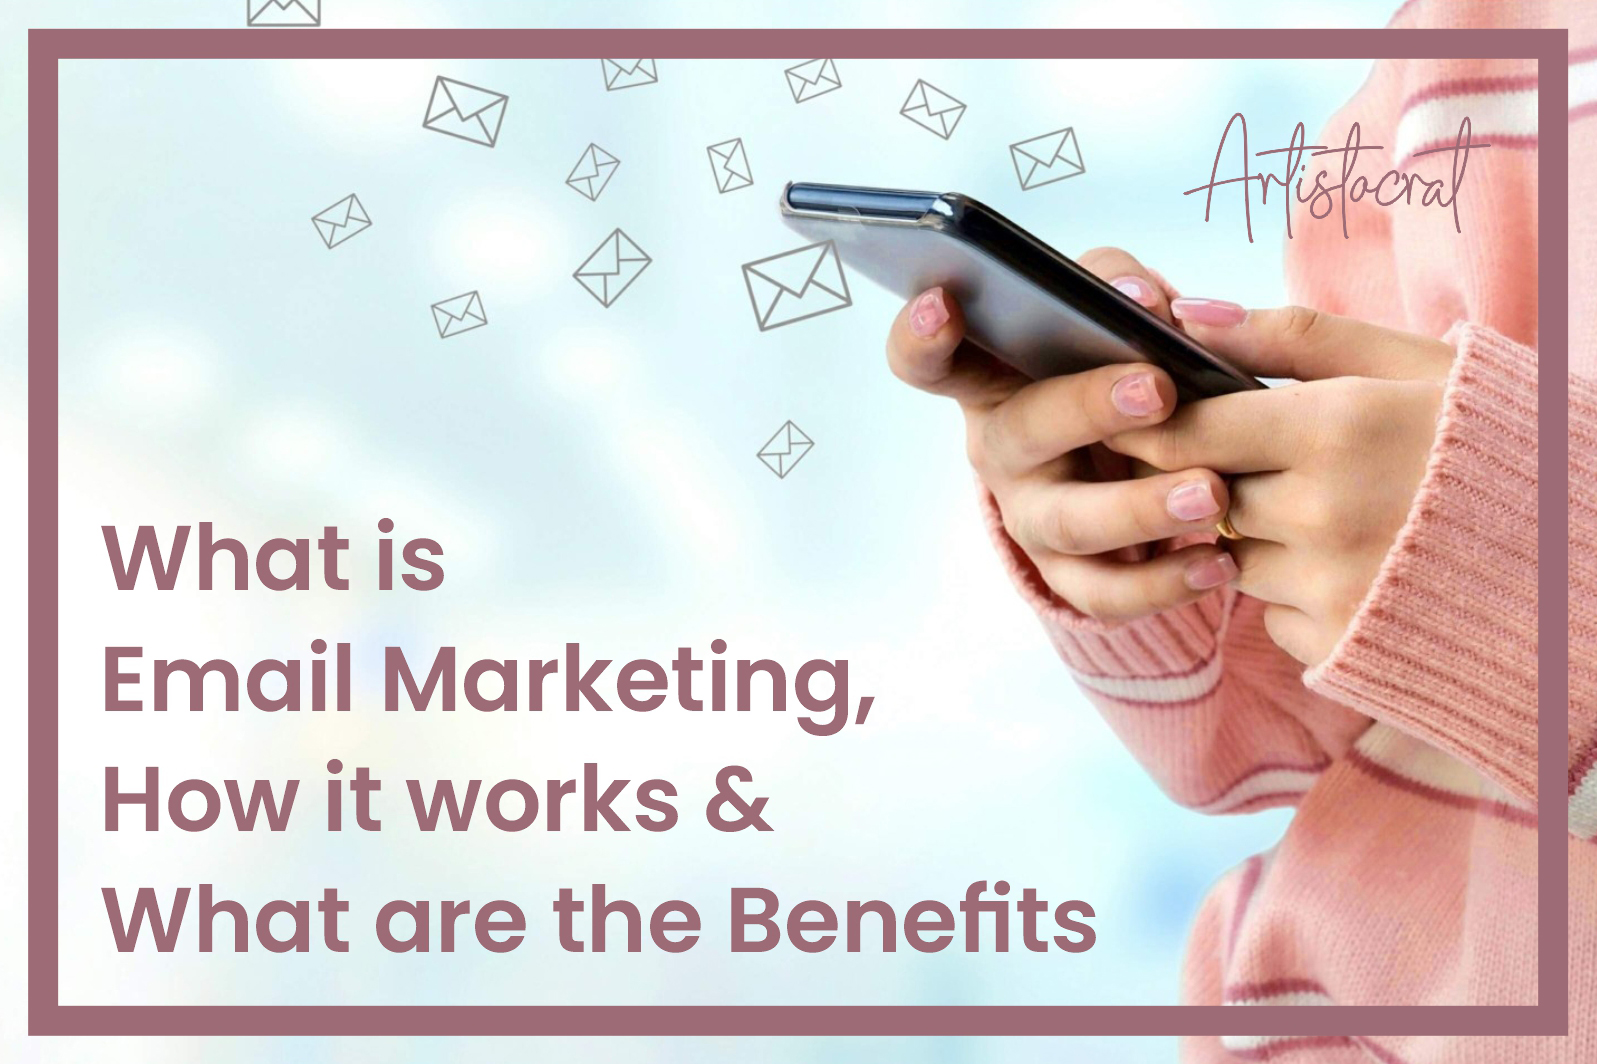 What-is-Email-Marketing-How-It-works-What-are-the-Benefits